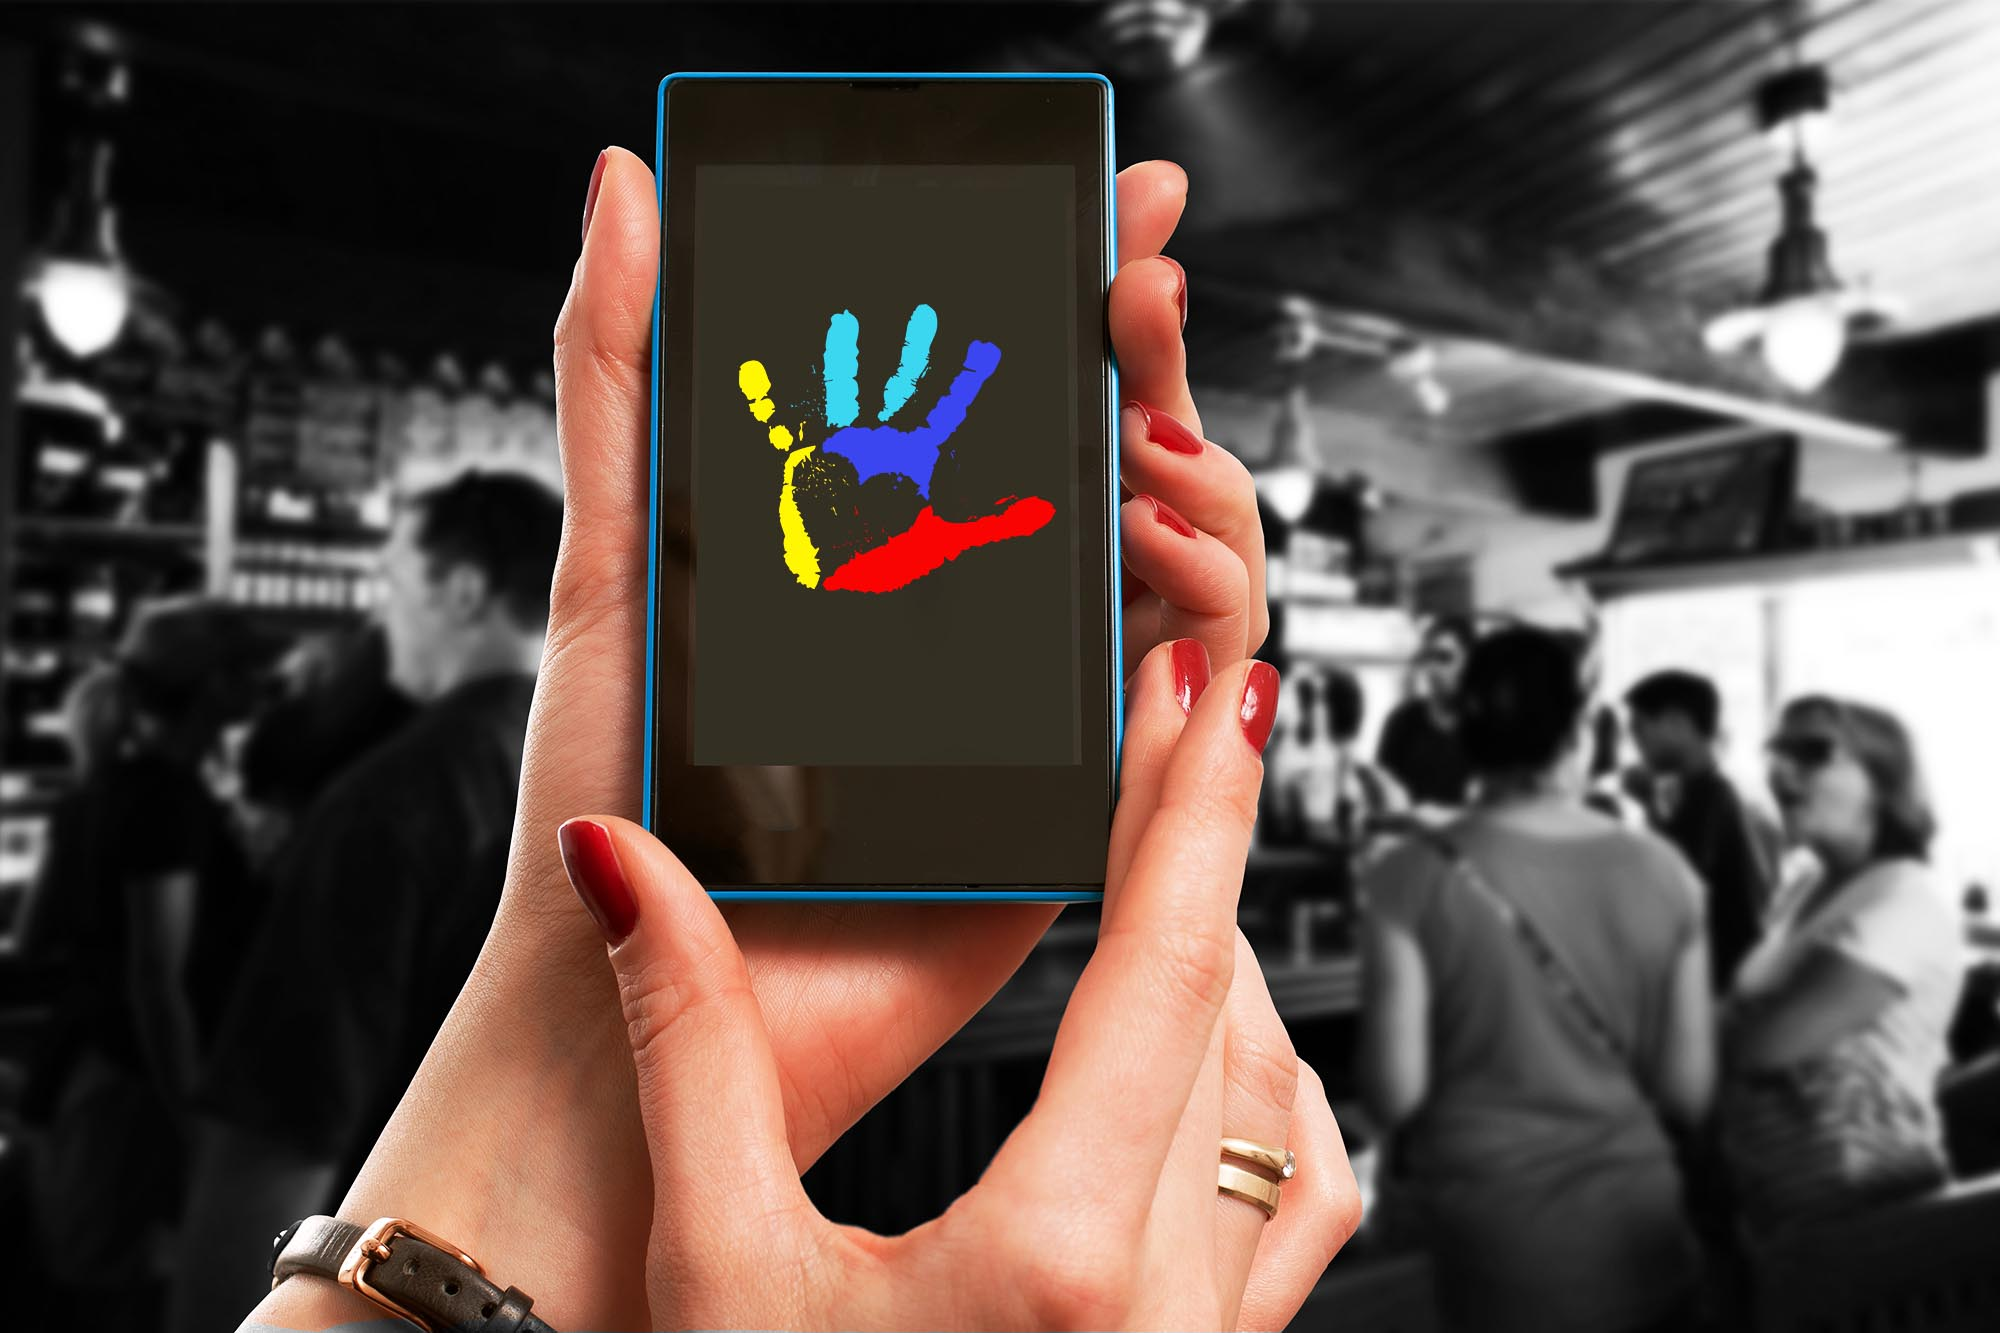 Innovative Yelp-Like App Raises Autism Awareness